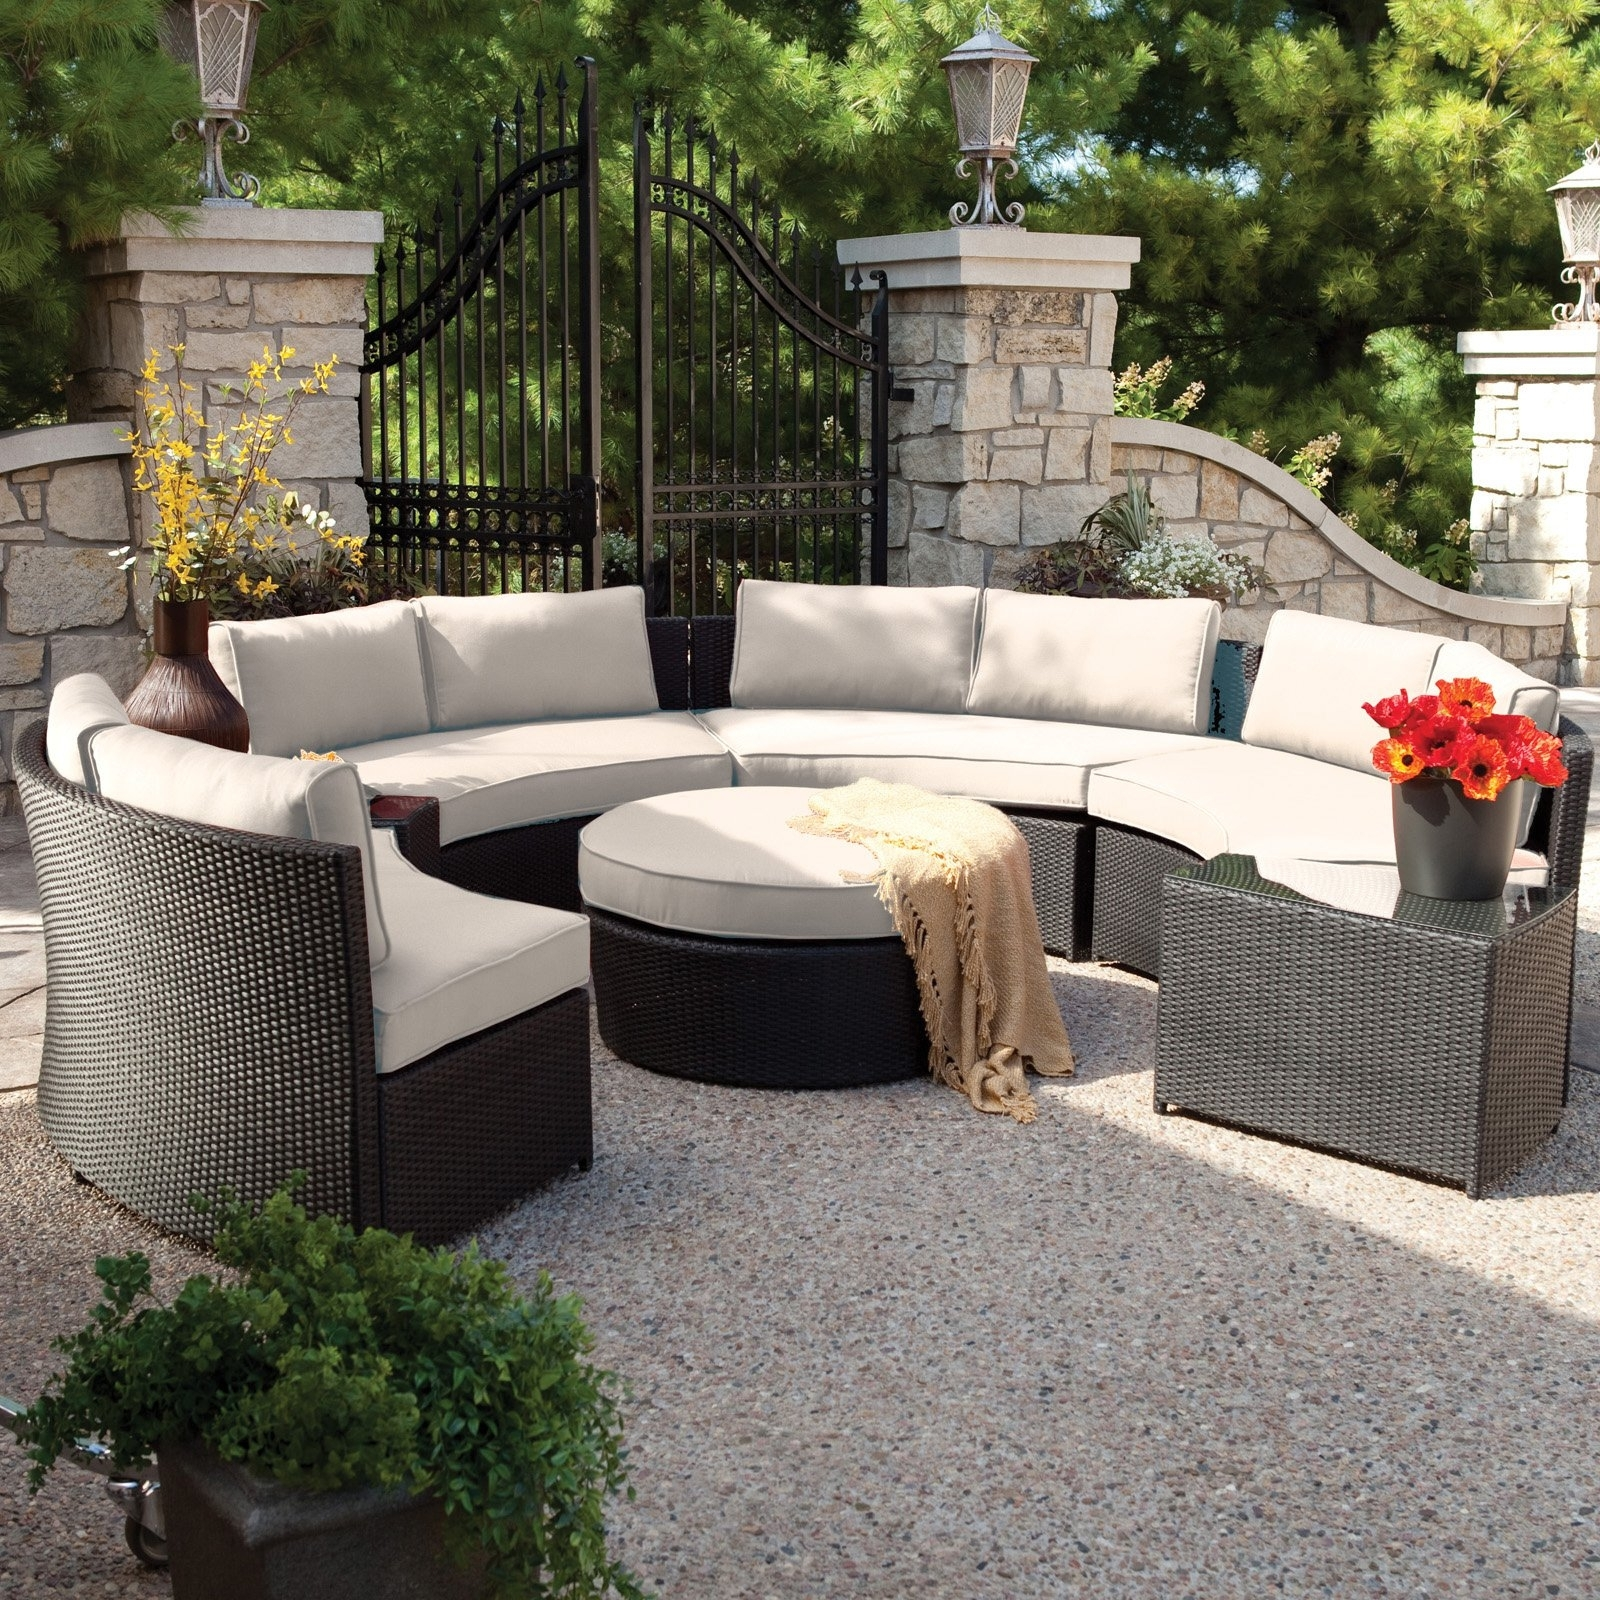 Patio Conversation Sets With Regard To Newest Belham Living Meridian Round Outdoor Wicker Patio Furniture Set With (View 9 of 15)